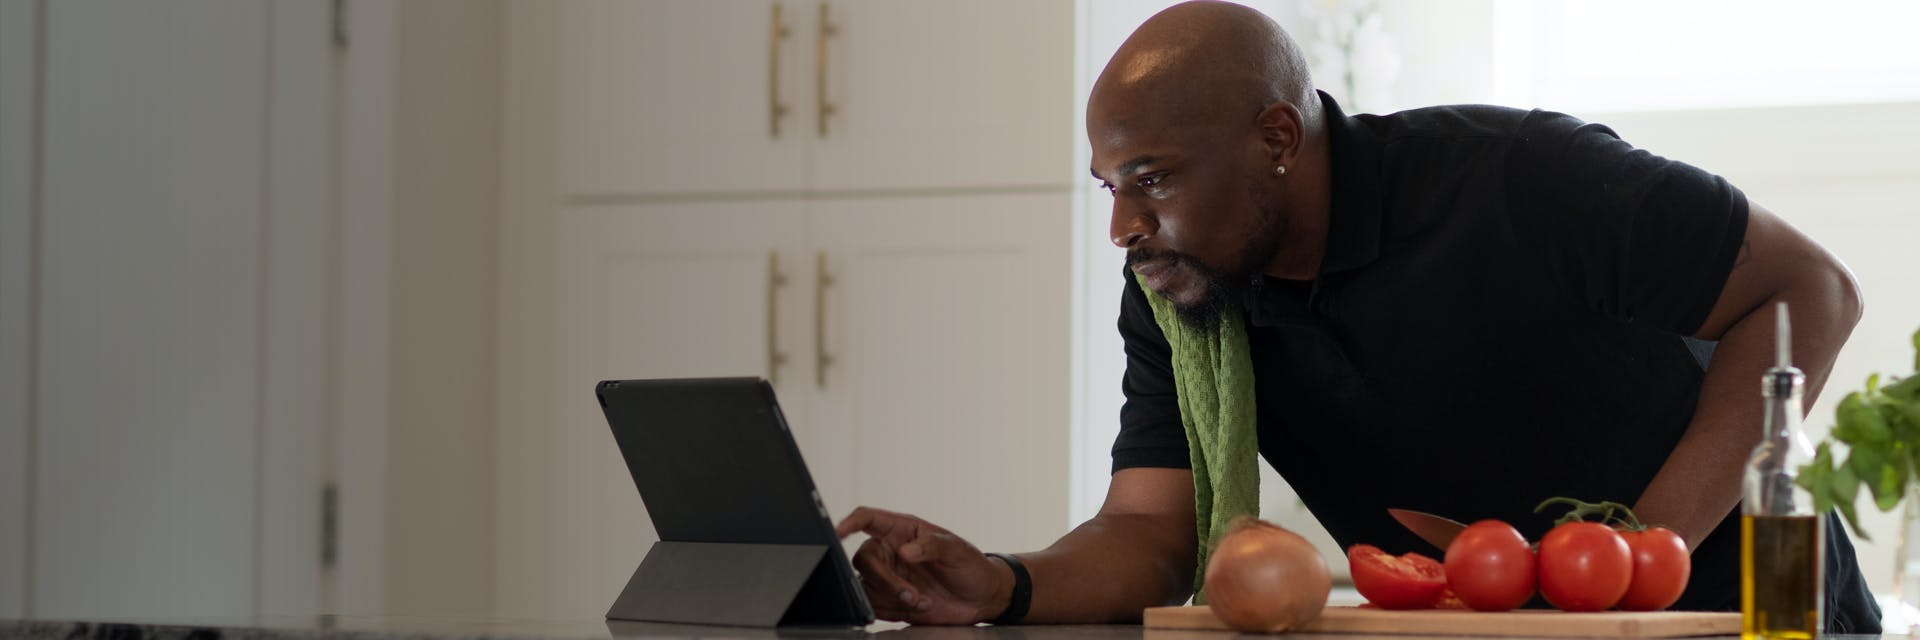 African-American man is cooking and using the internet on his iPad.